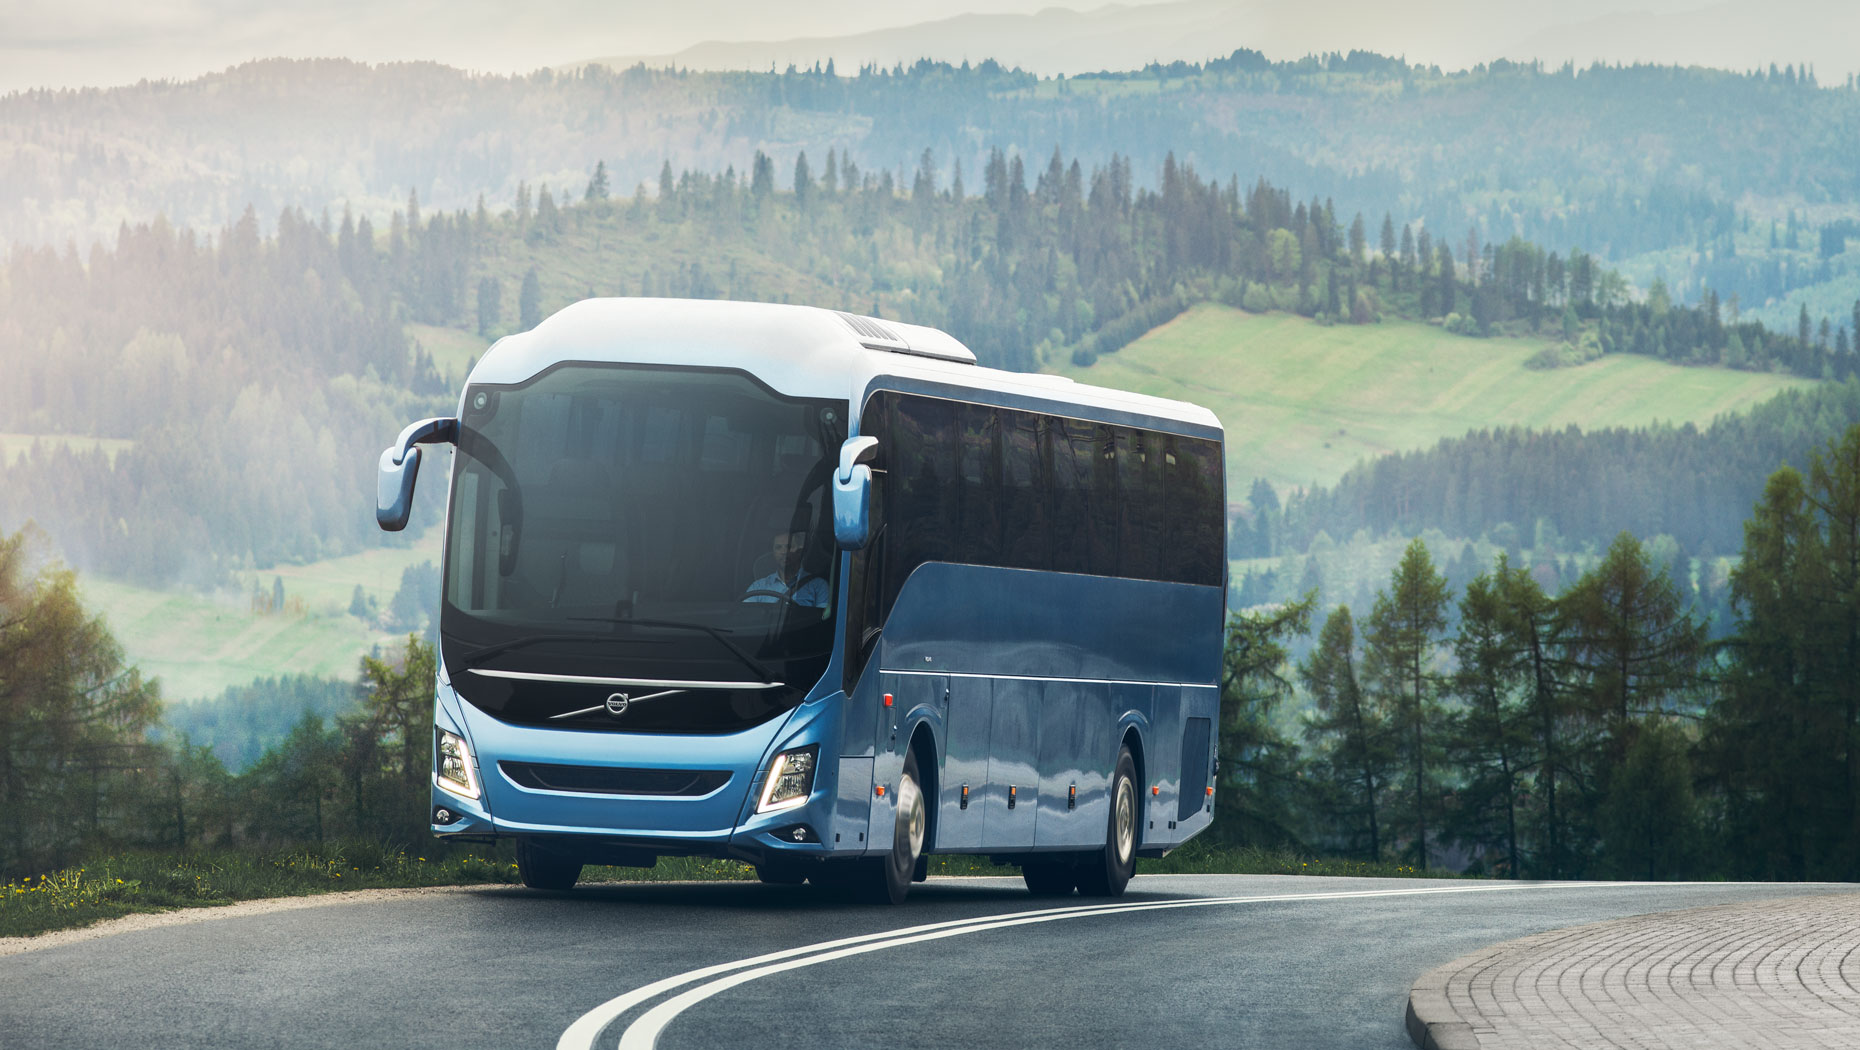 Volvo bus driving on the road